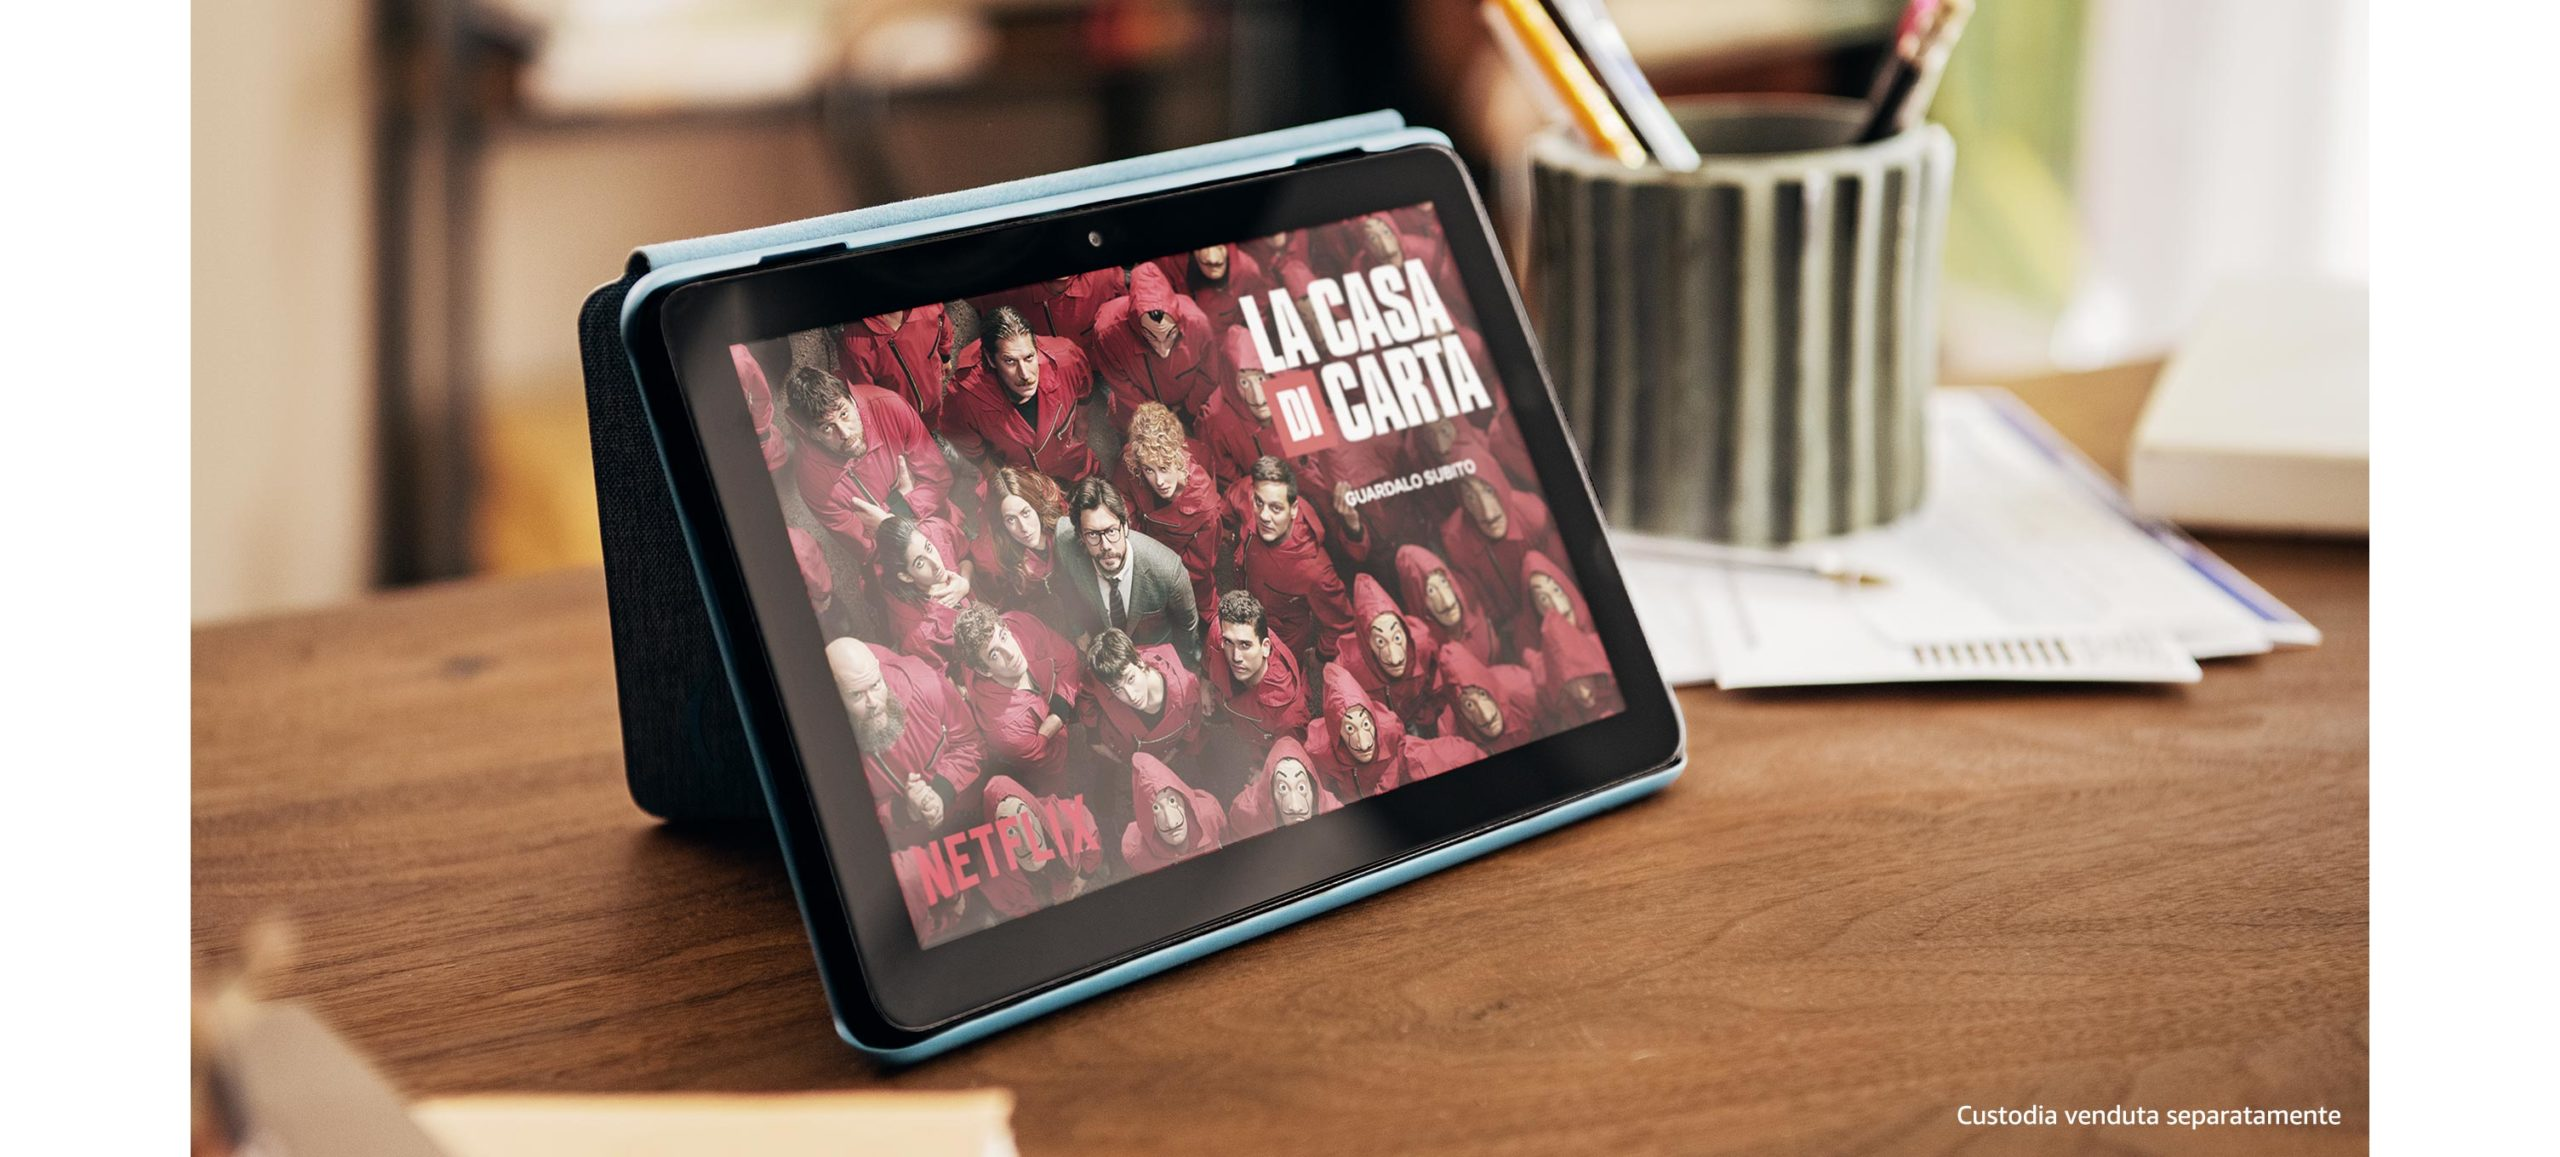 Offerta Nuovo Tablet Fire HD 8 a 99€, Miglior Tablet economico 2020!